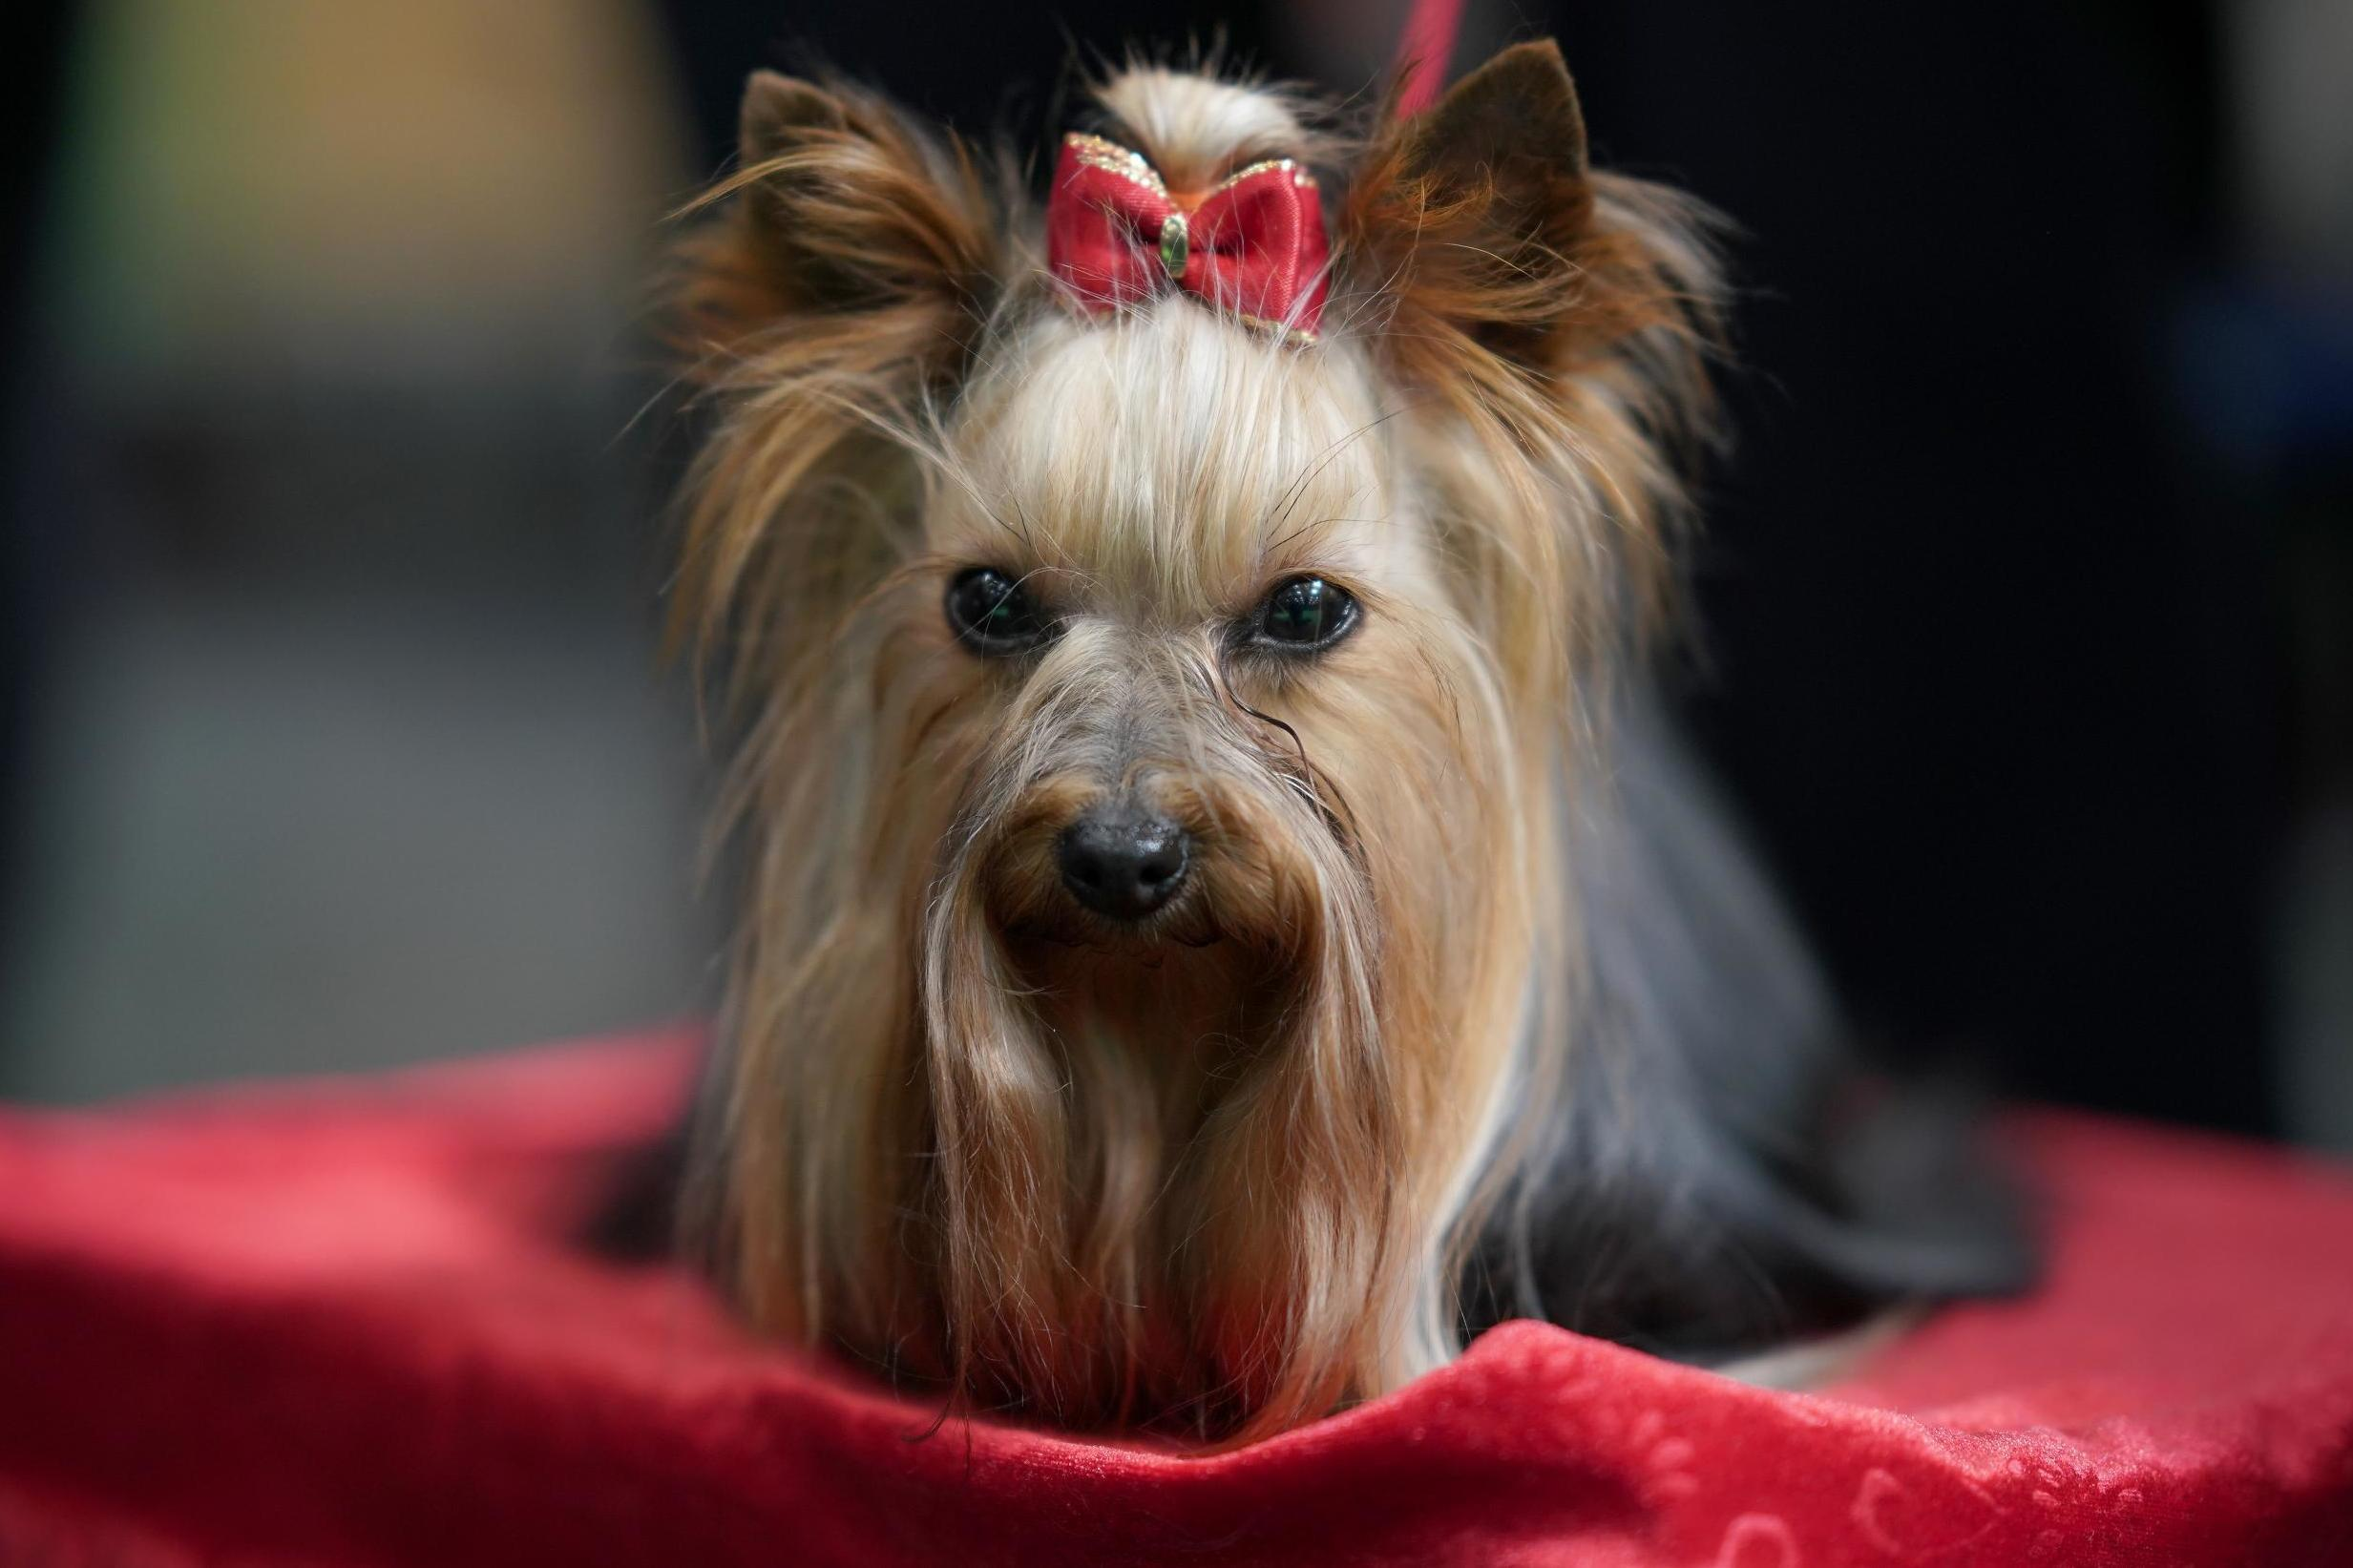 Crufts 2019: Dog owners show their pets watching the competition